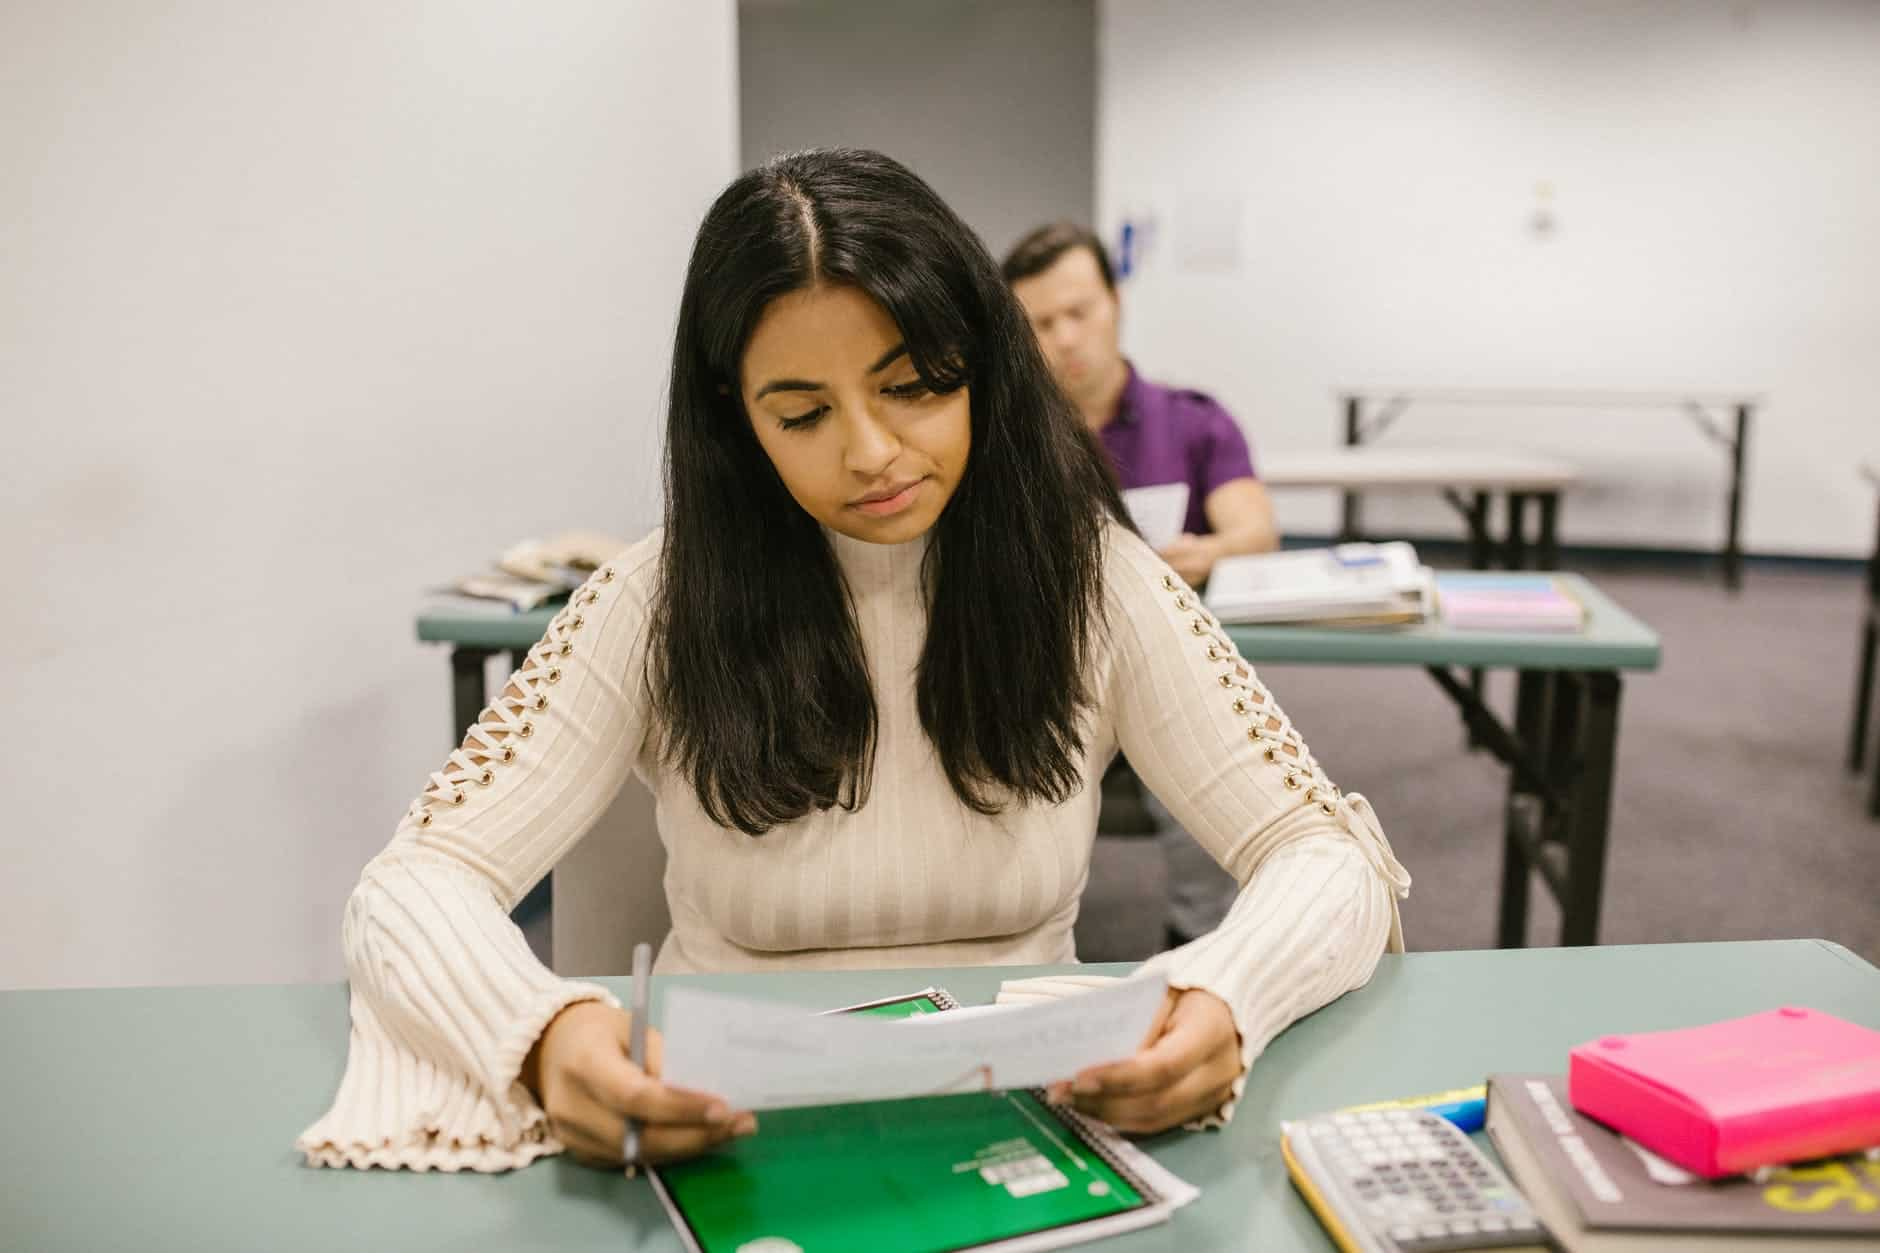 student looking at her test result